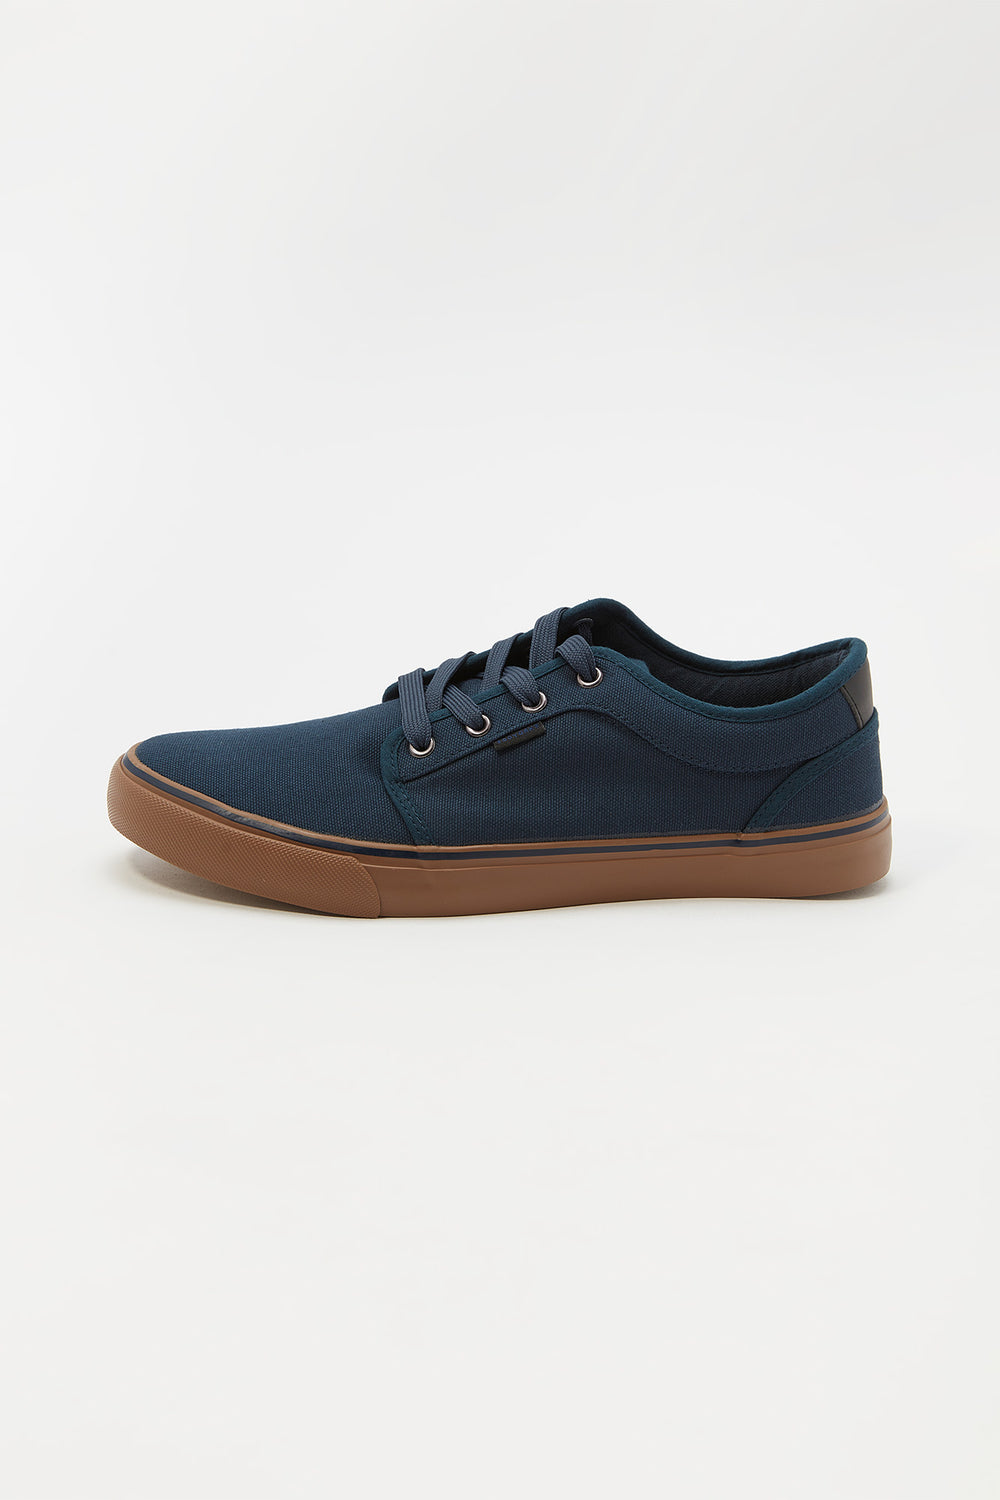 Zoo York Mens Ellis Navy Canvas Skate Shoes Navy